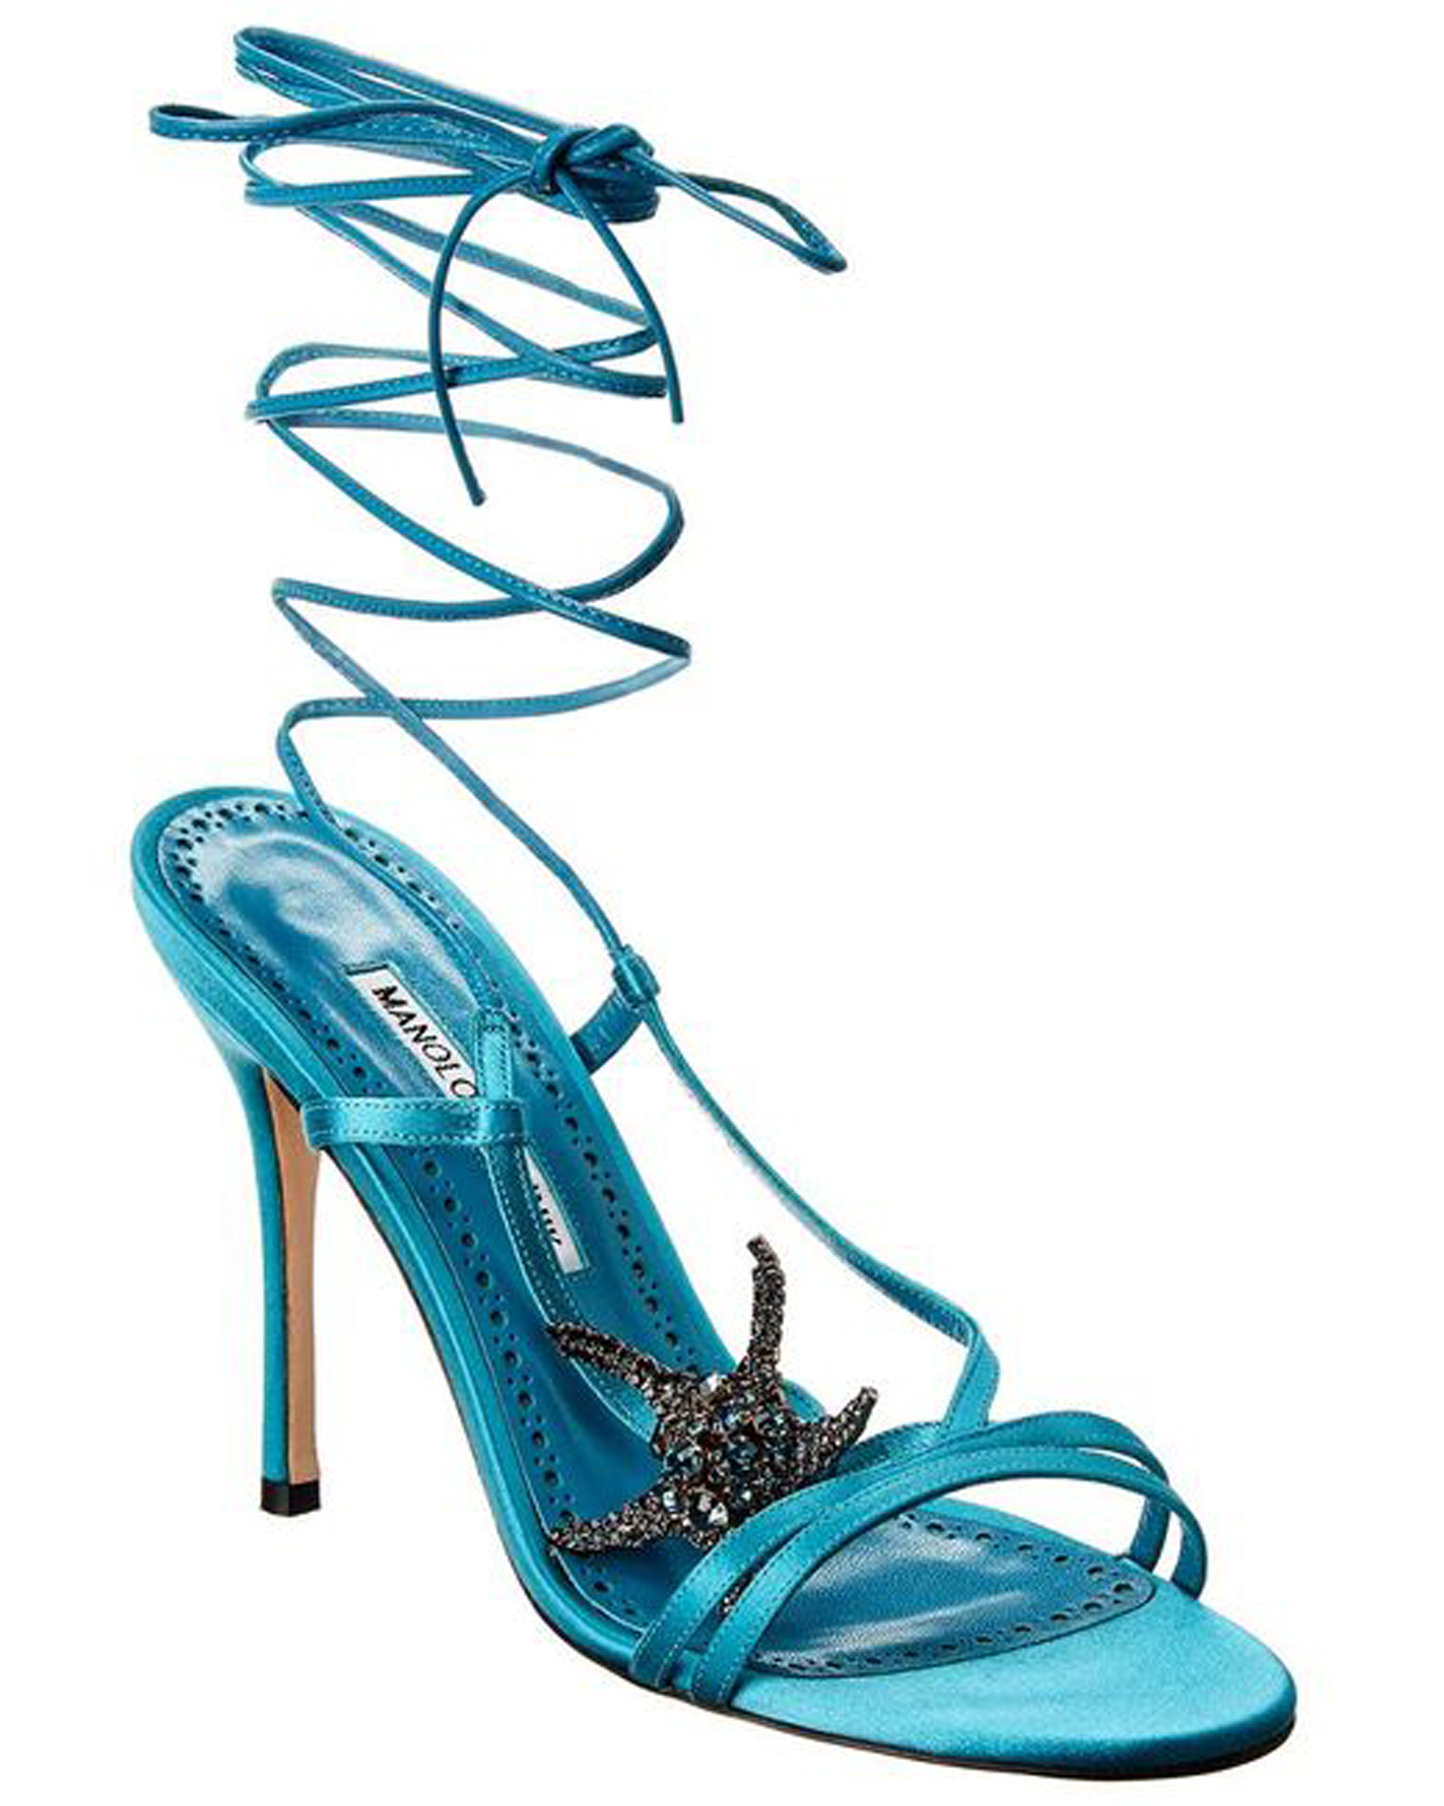 Women's Blue Bucu 105 Satin Sandal